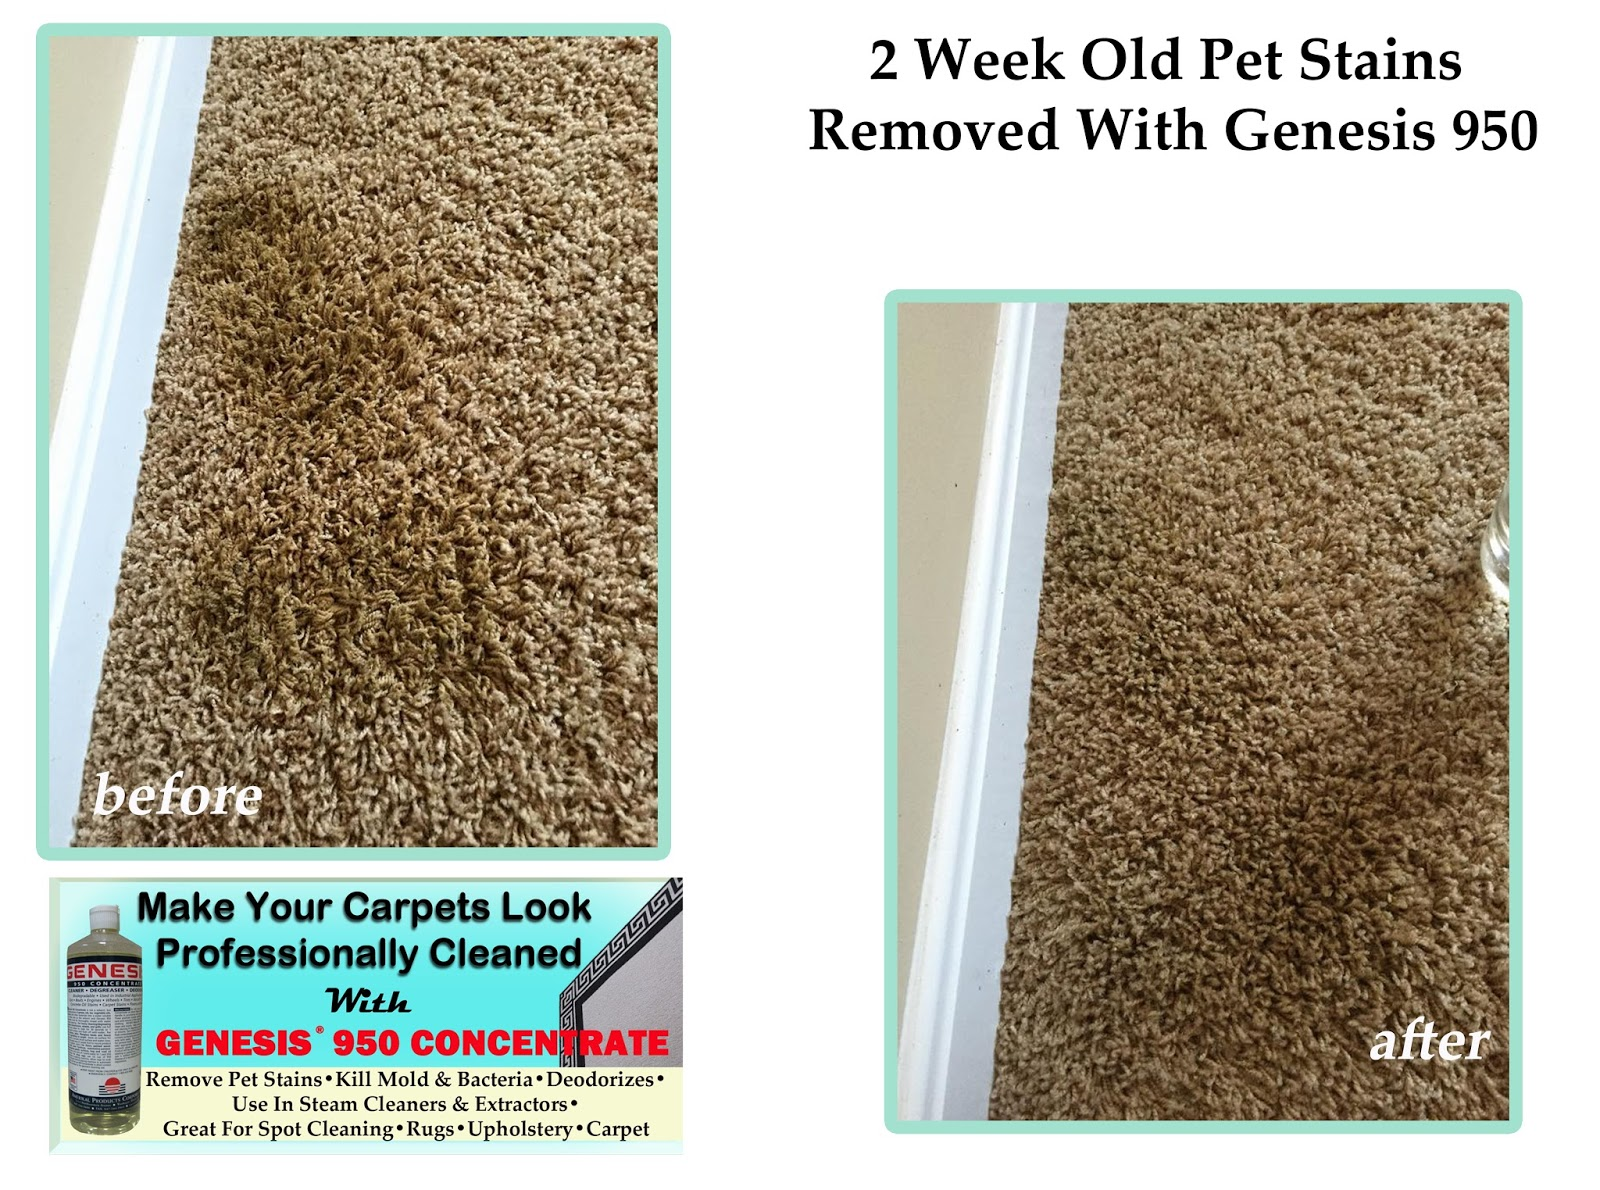 Best Carpet Cleaner And Stain Remover: Genesis 950 Before ...